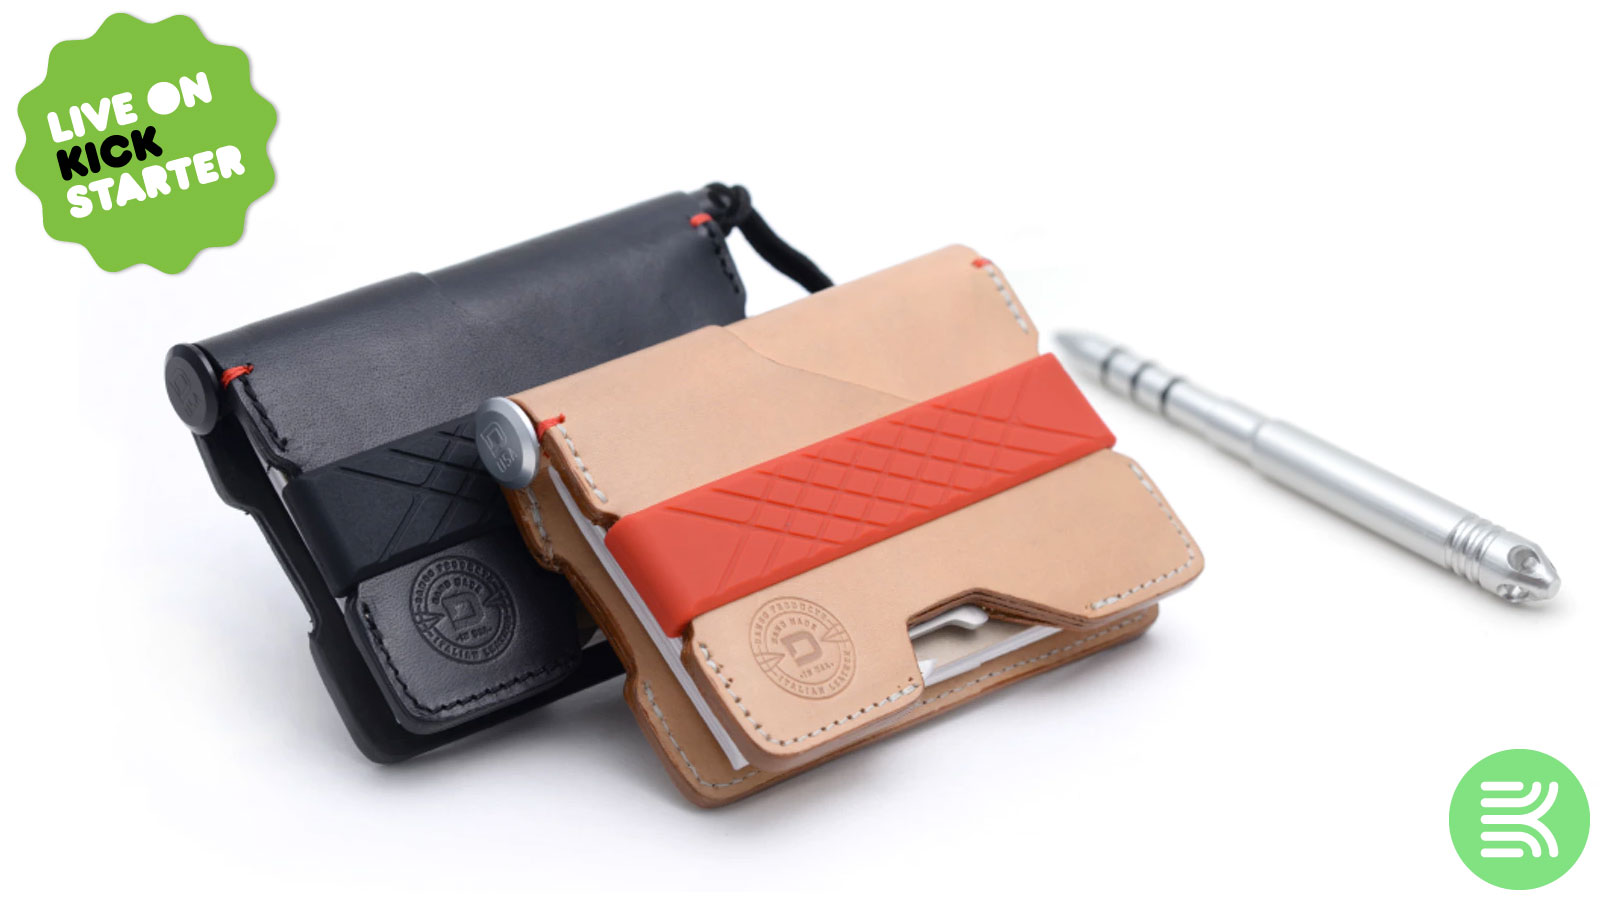 Enter to win a Dango T01 Tactical Wallet + Tether + Extra Band worth over $110